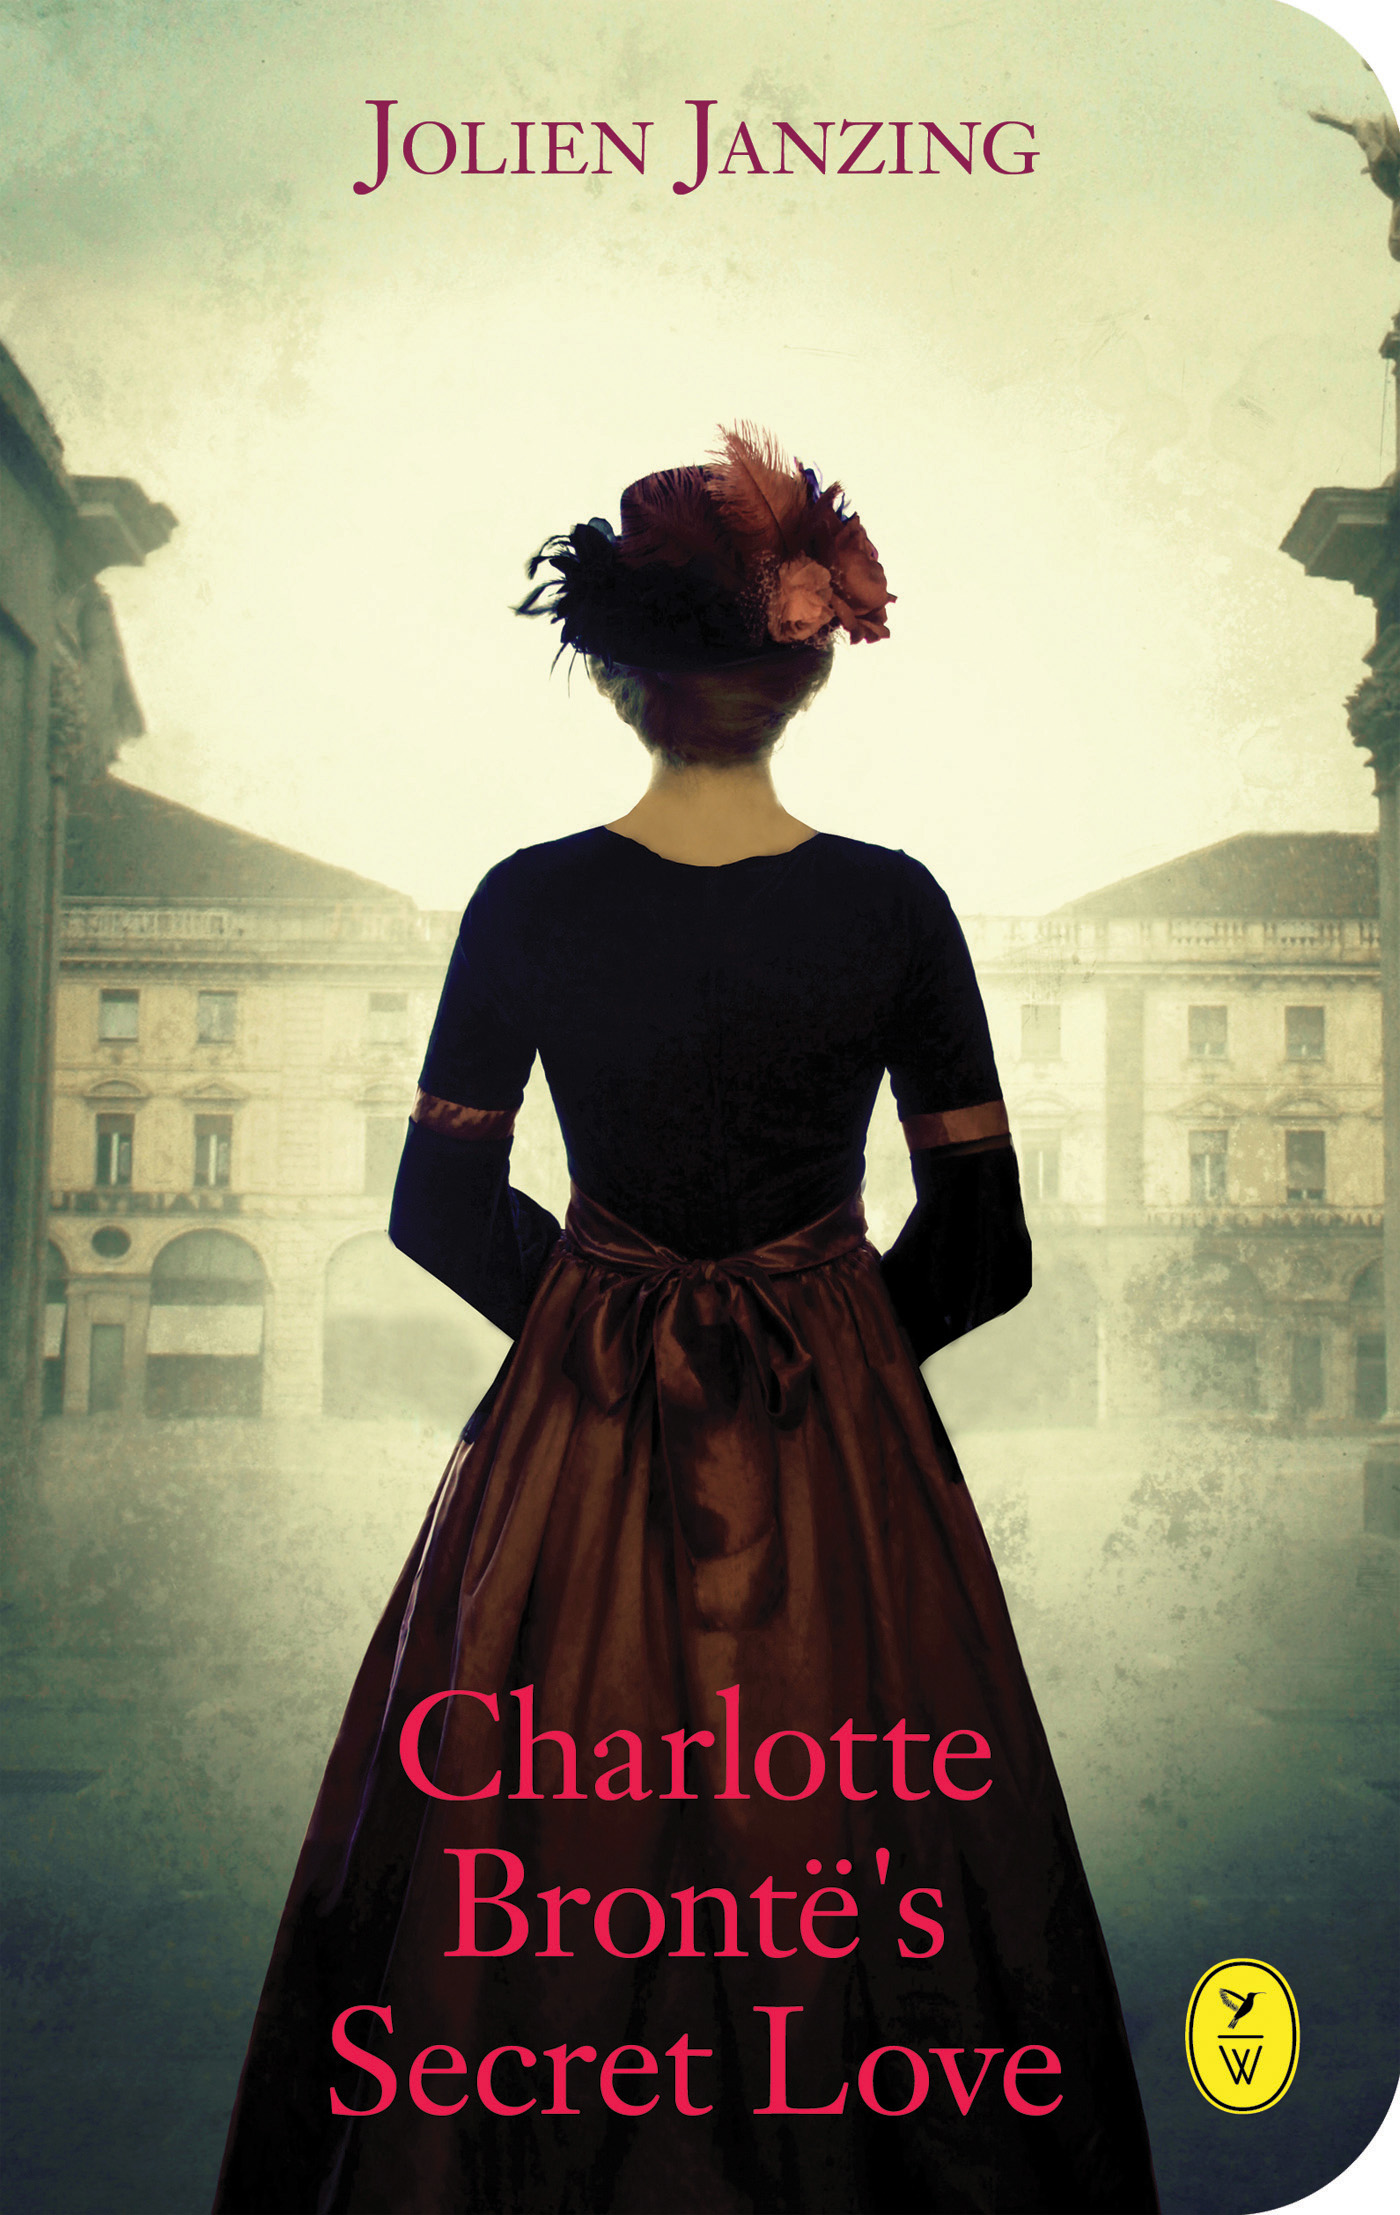 Charlotte Brontë's Secret Love